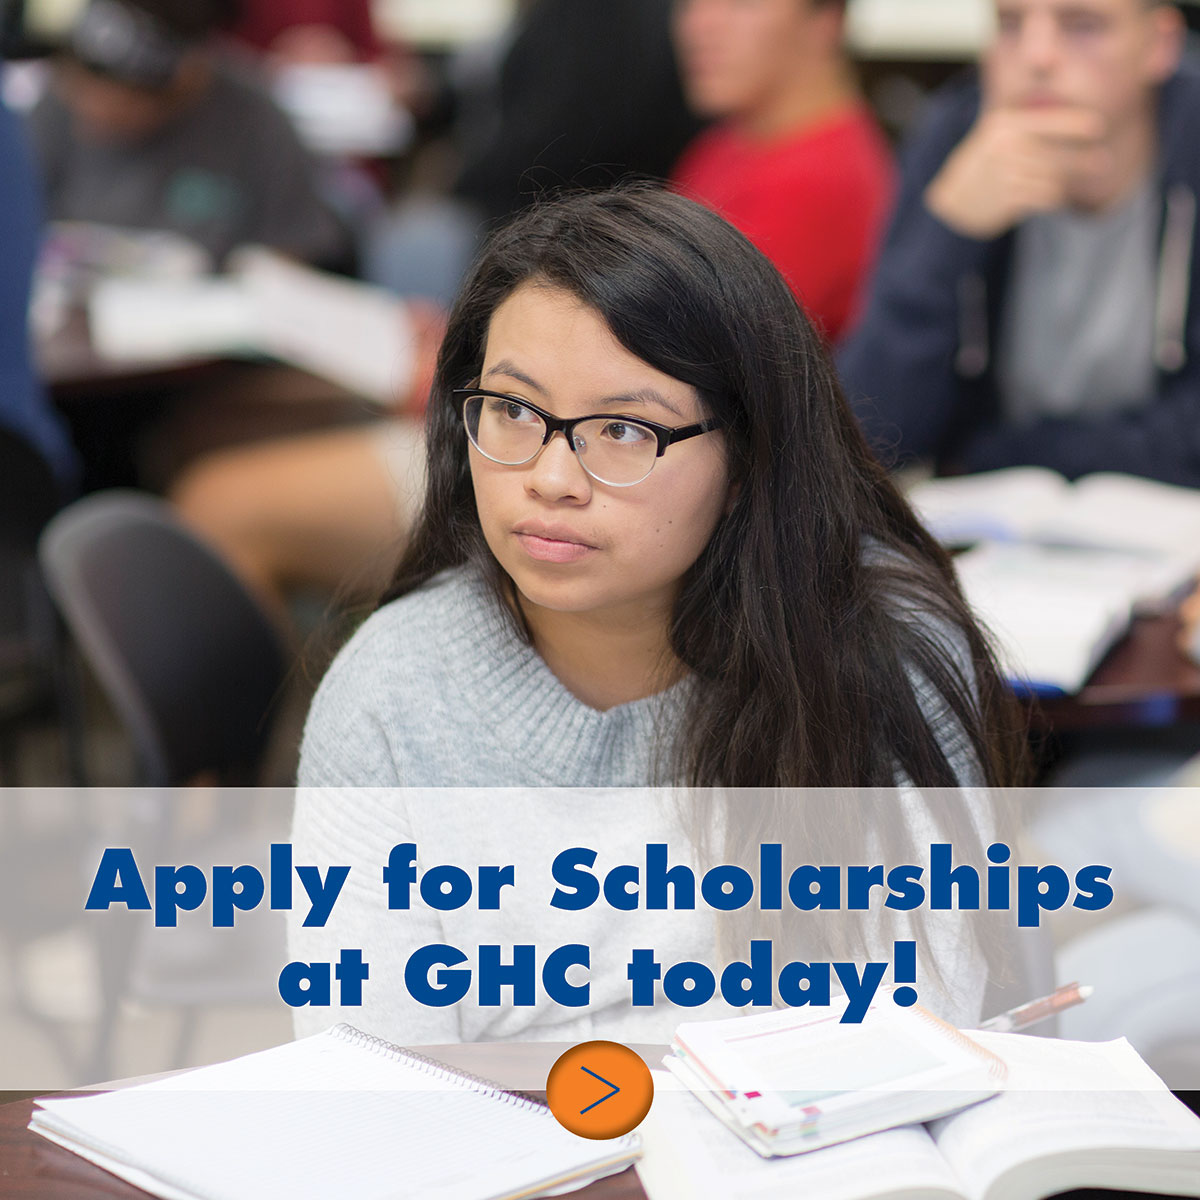 Apply for scholarships. Over $150,000 awarded each year! Apply for GHC Foundation Scholarships today.